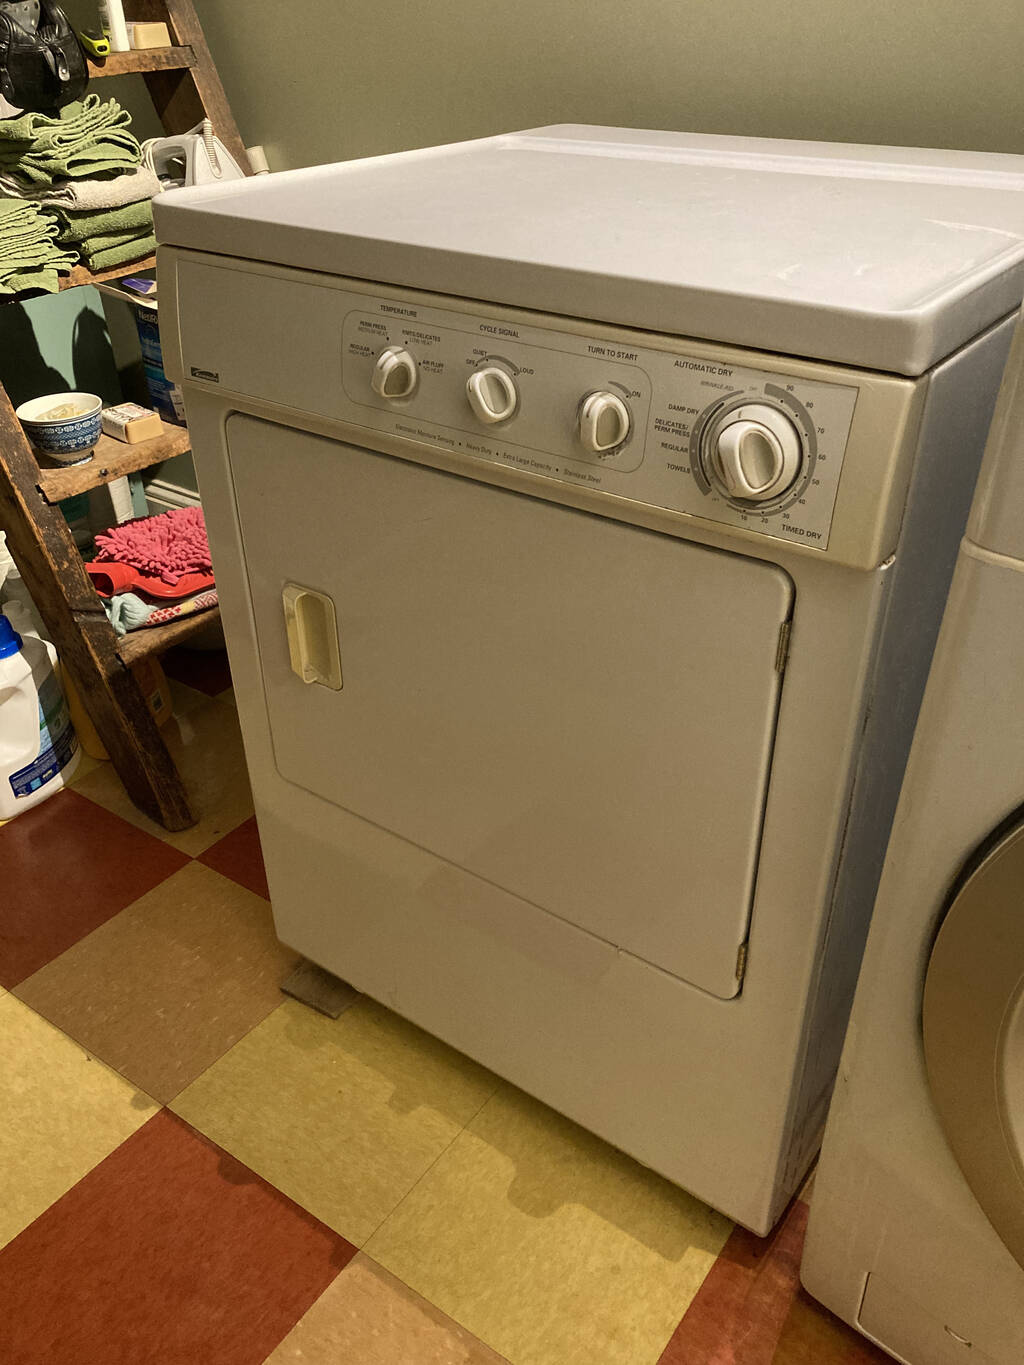 Our old Kenmore clothes dryer, in its space in our laundry room.